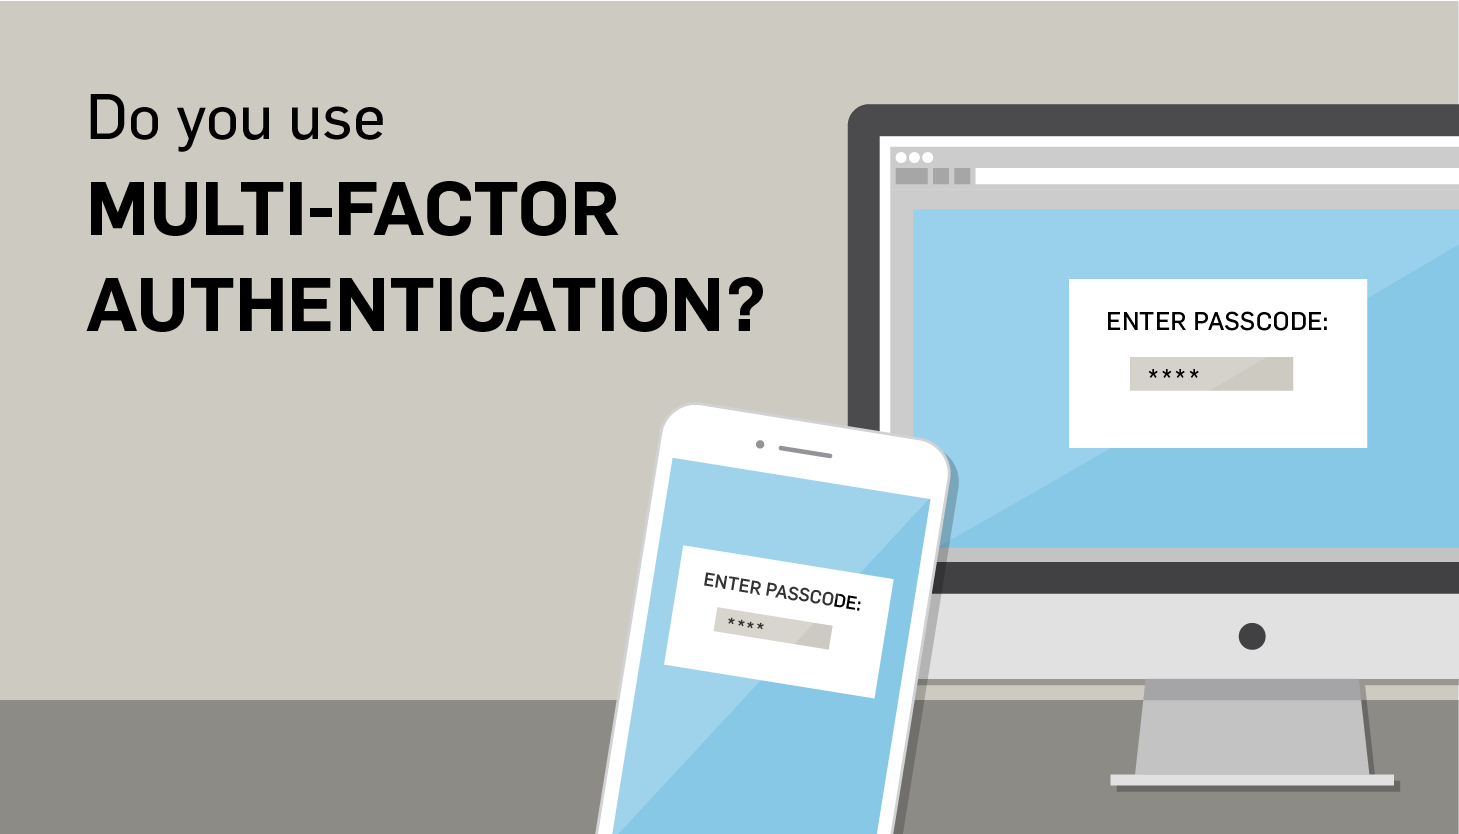 multi factor authentication We break down the different forms of authentication, how they work, and how they can help to secure your information online.